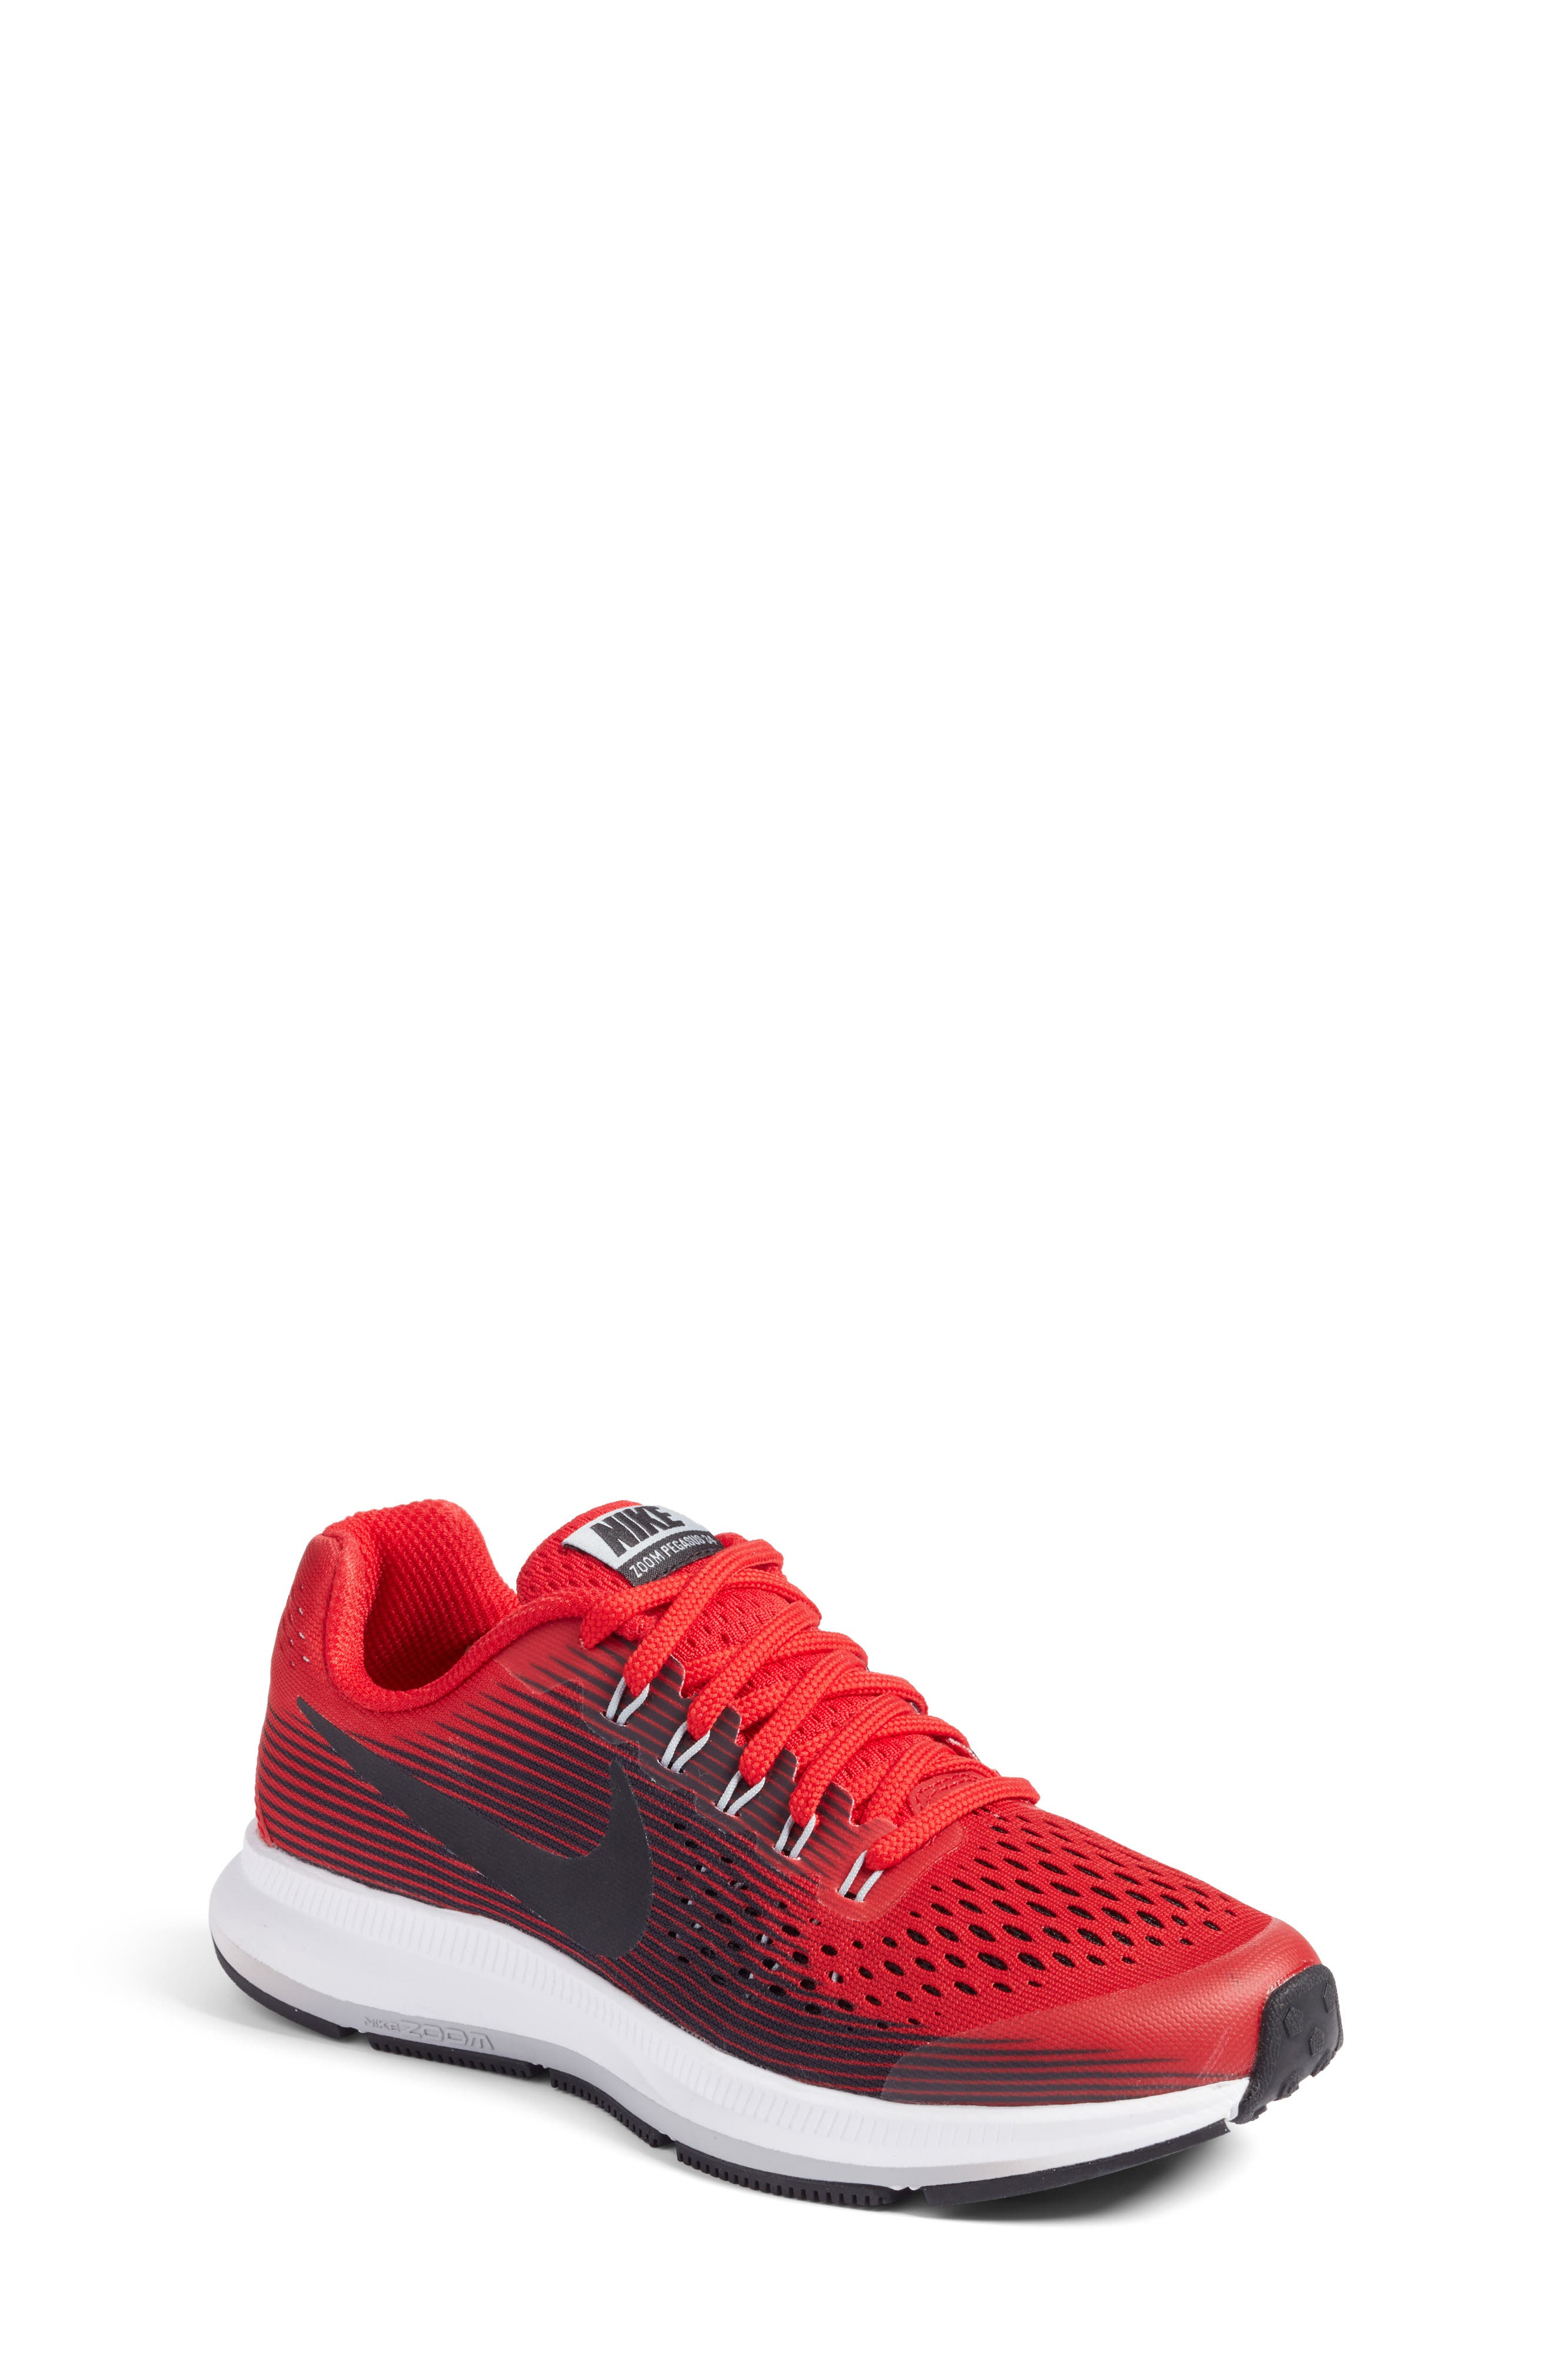 Nike Zoom Pegasus 34 Sneaker (Little Kid & Big Kid)